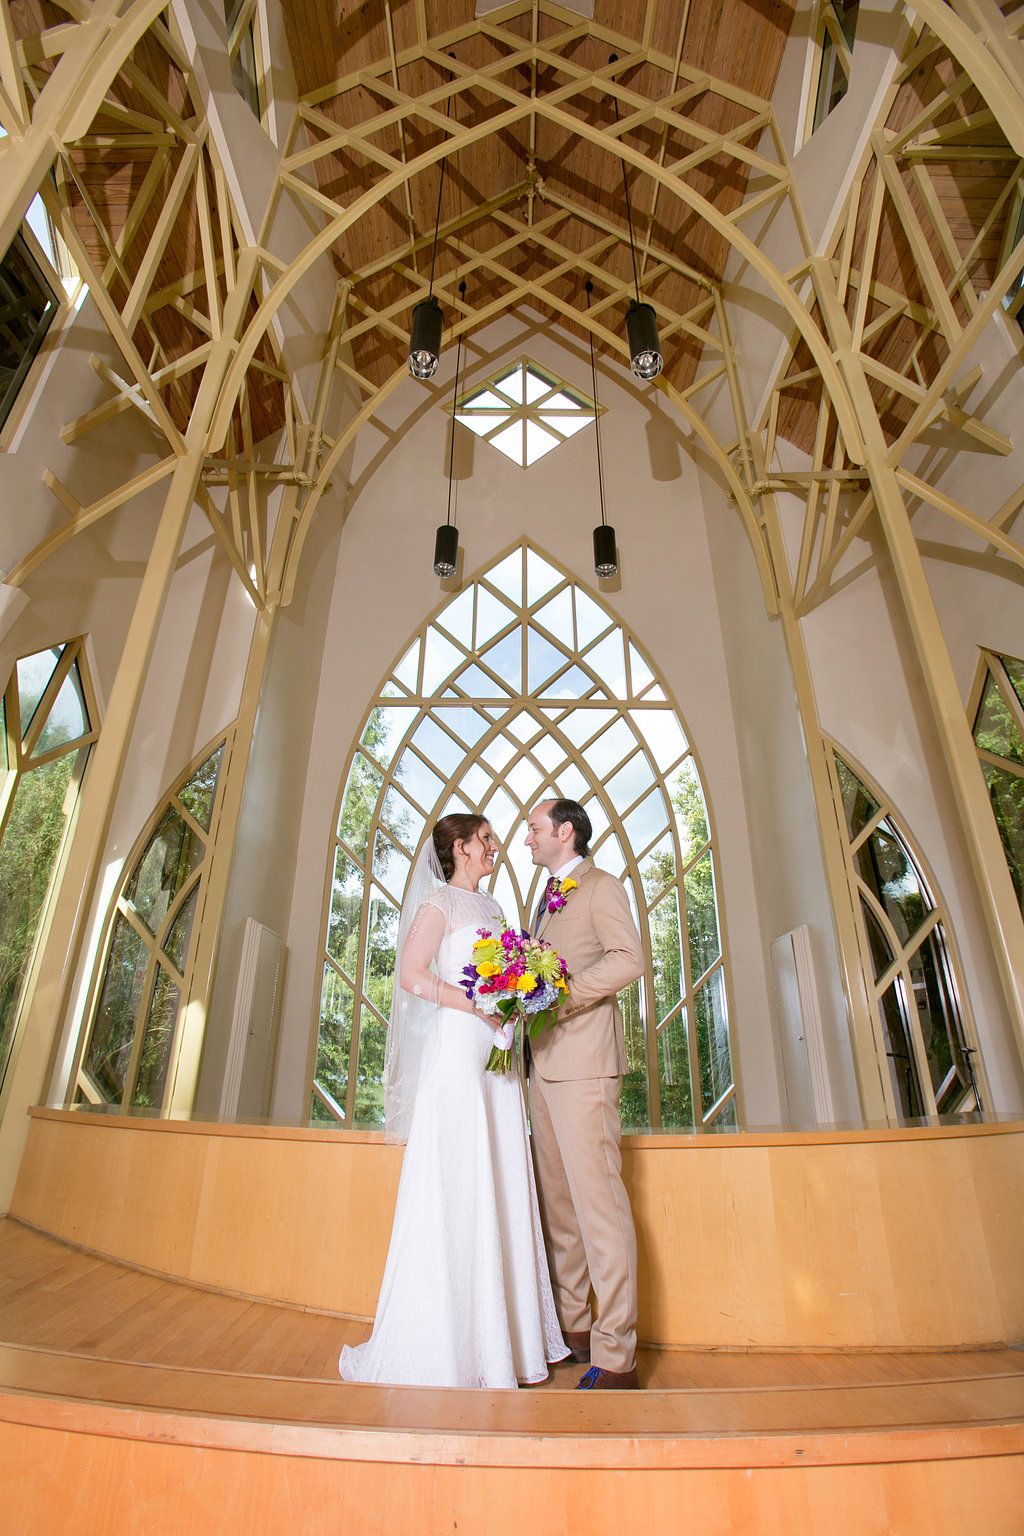 Wedding At The Baughman Center Gainesville FL Photo By Verve Studios